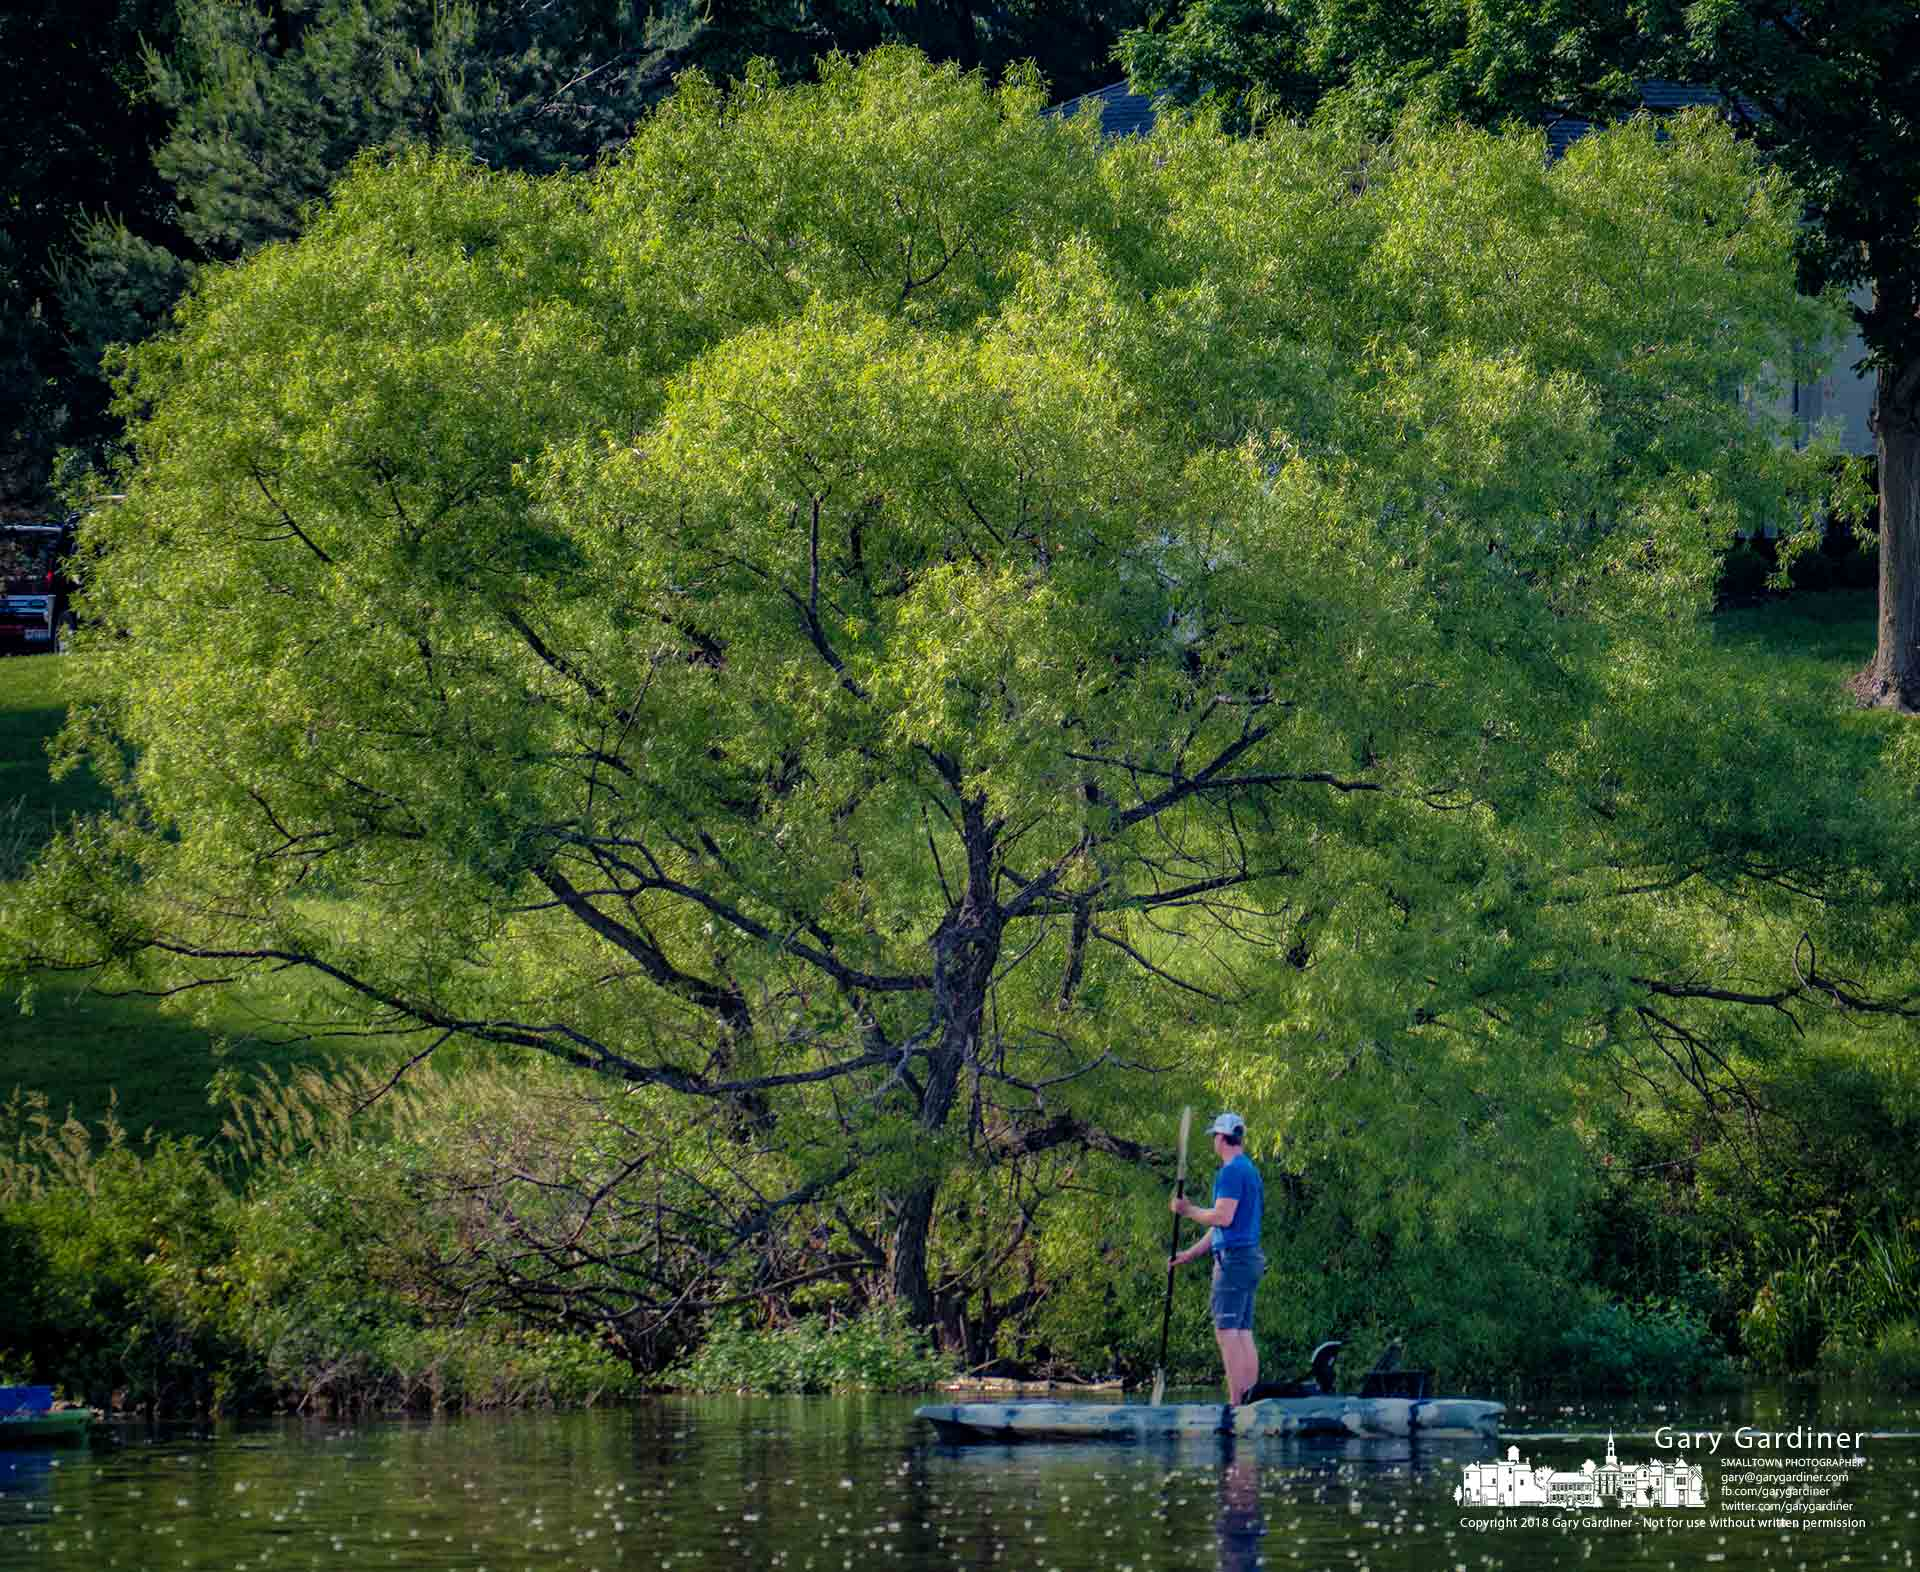 A kayaking angler navigates his way along the shoreline of Hoover Reservoir. My Final Photo for May 27, 2018,